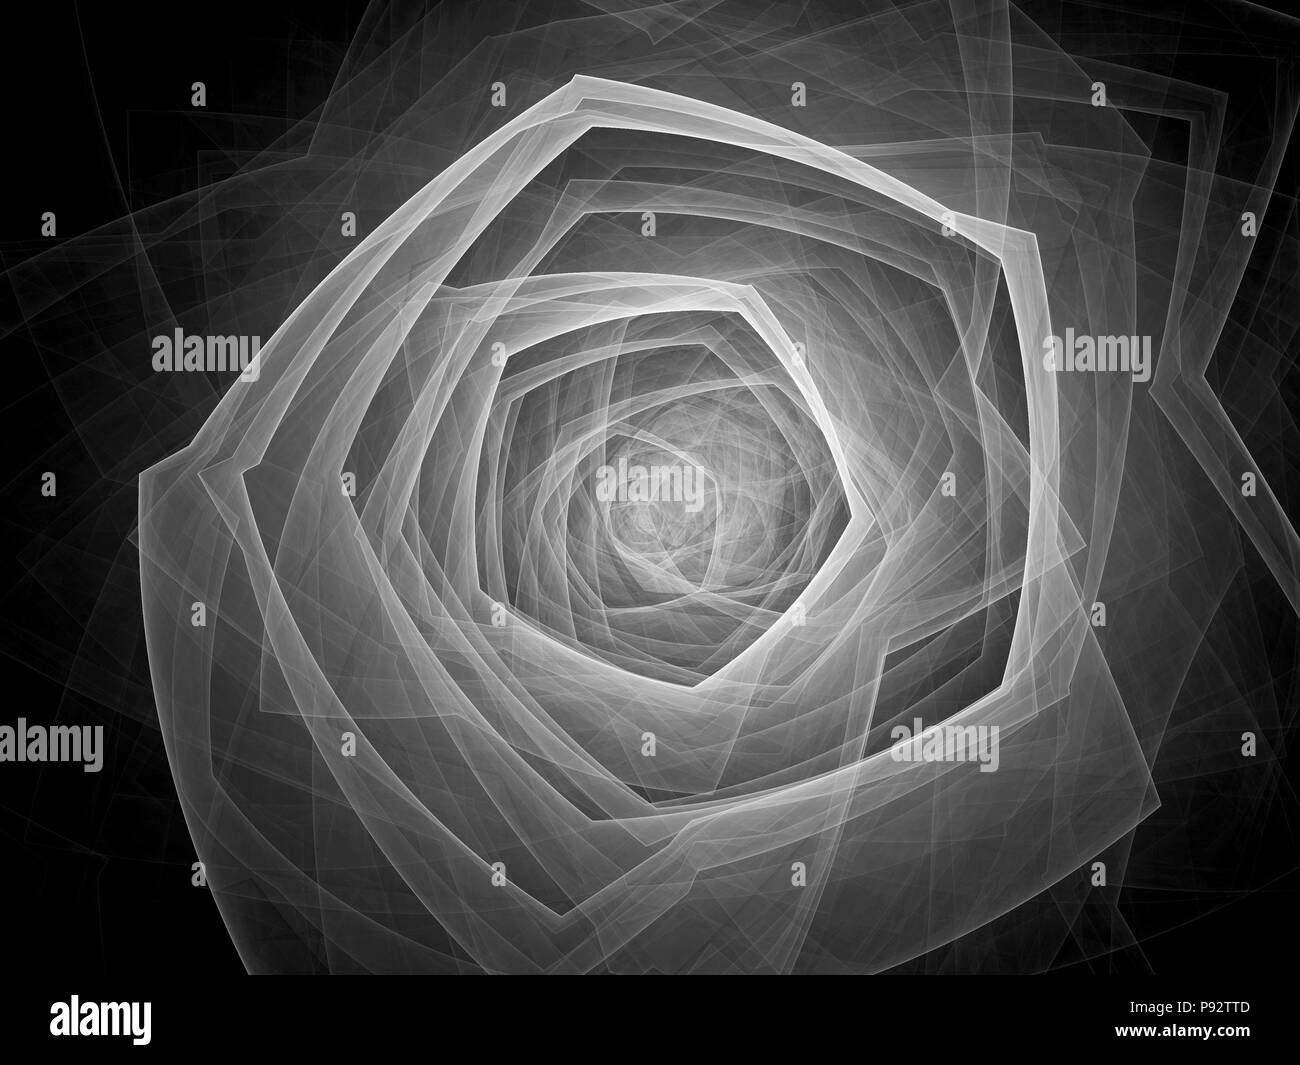 Technological singularity effect, computer generated abstract intensity map, black and white, 3D rendering - Stock Image